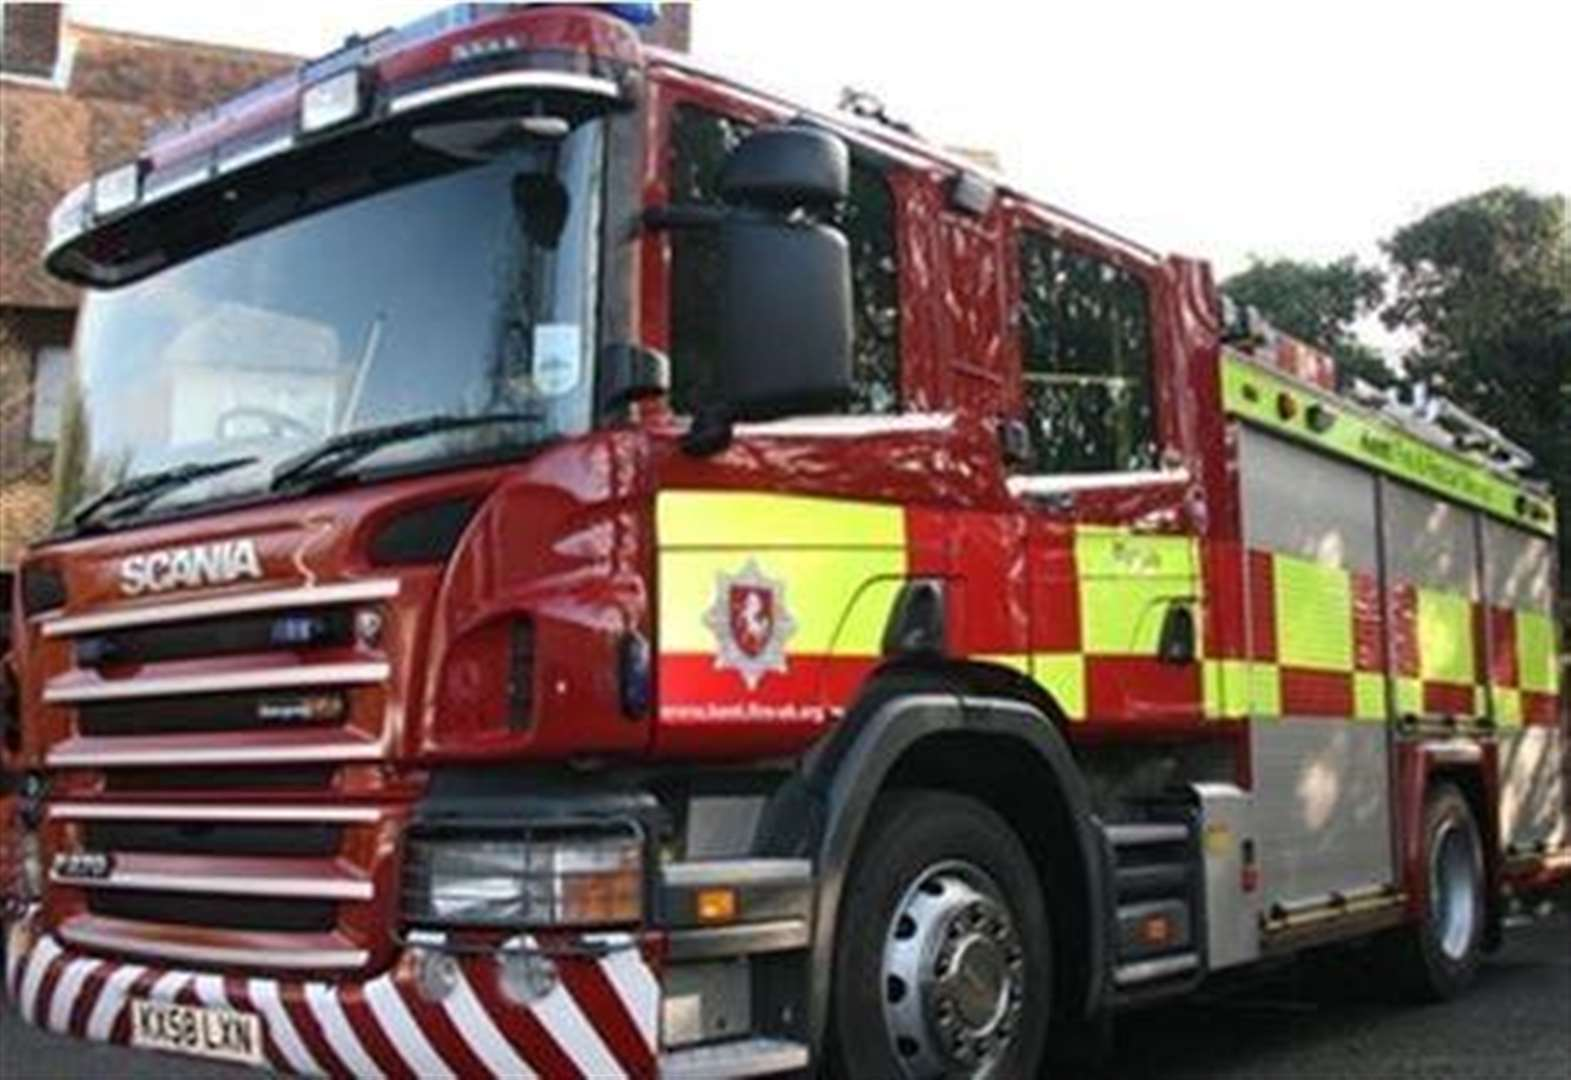 Fire crews called to oasthouse blaze